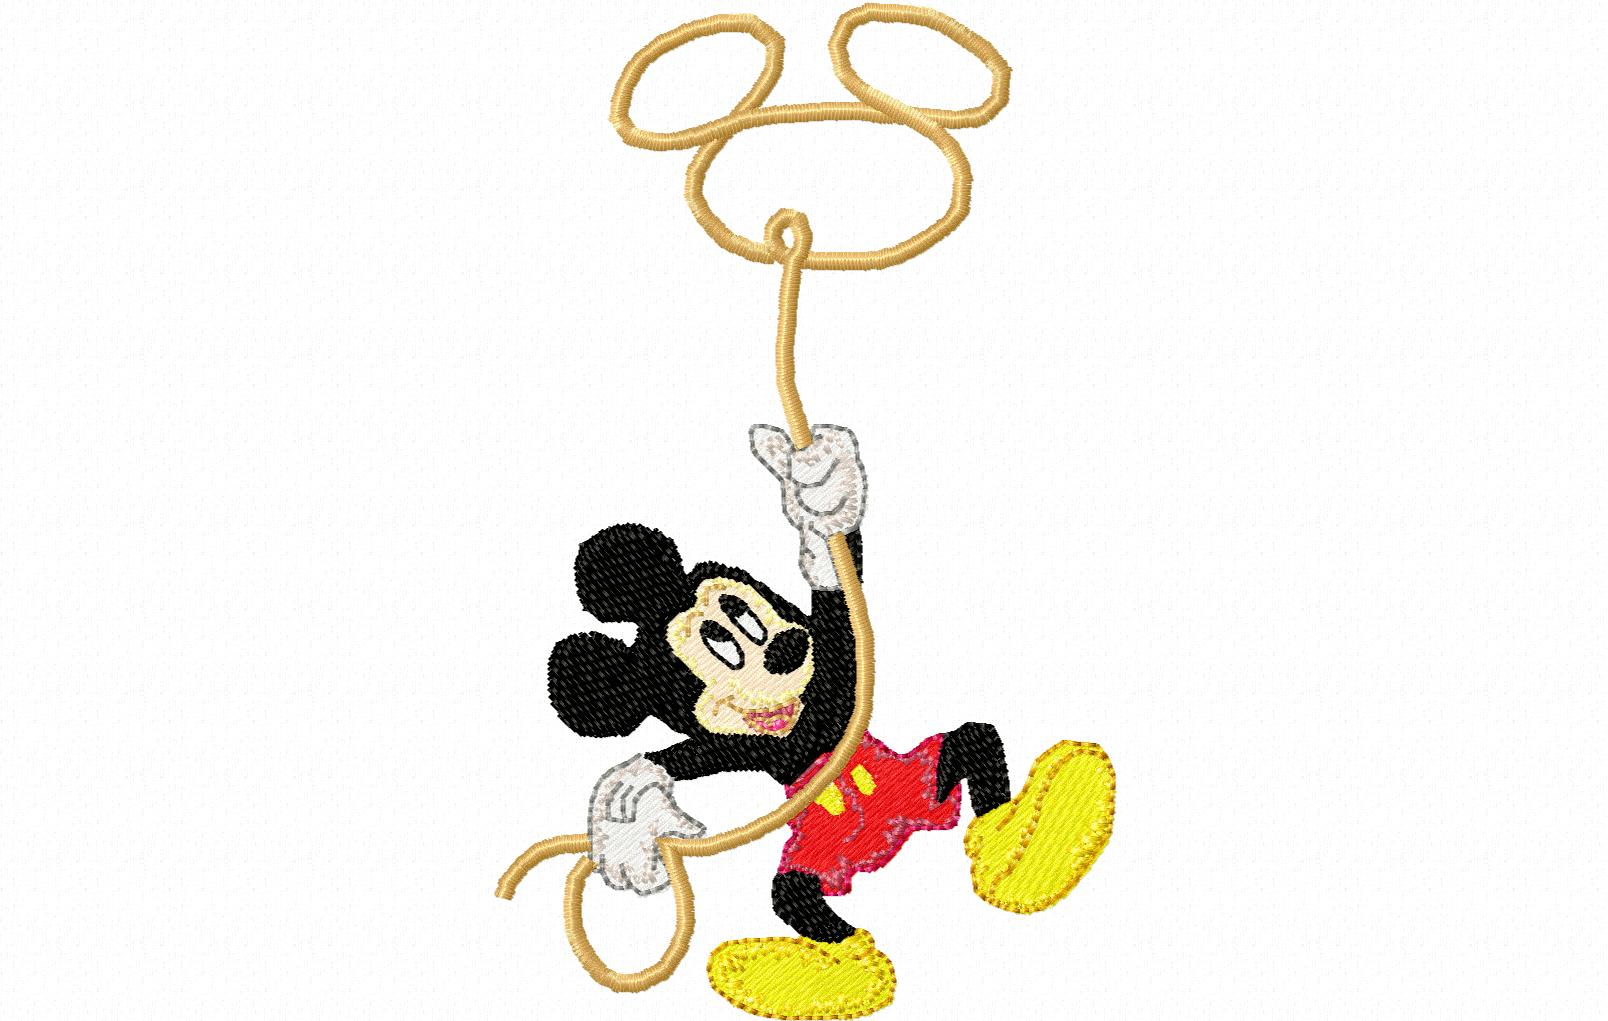 Disney Christmas Mickey and Friends Embroidery Designs: Design